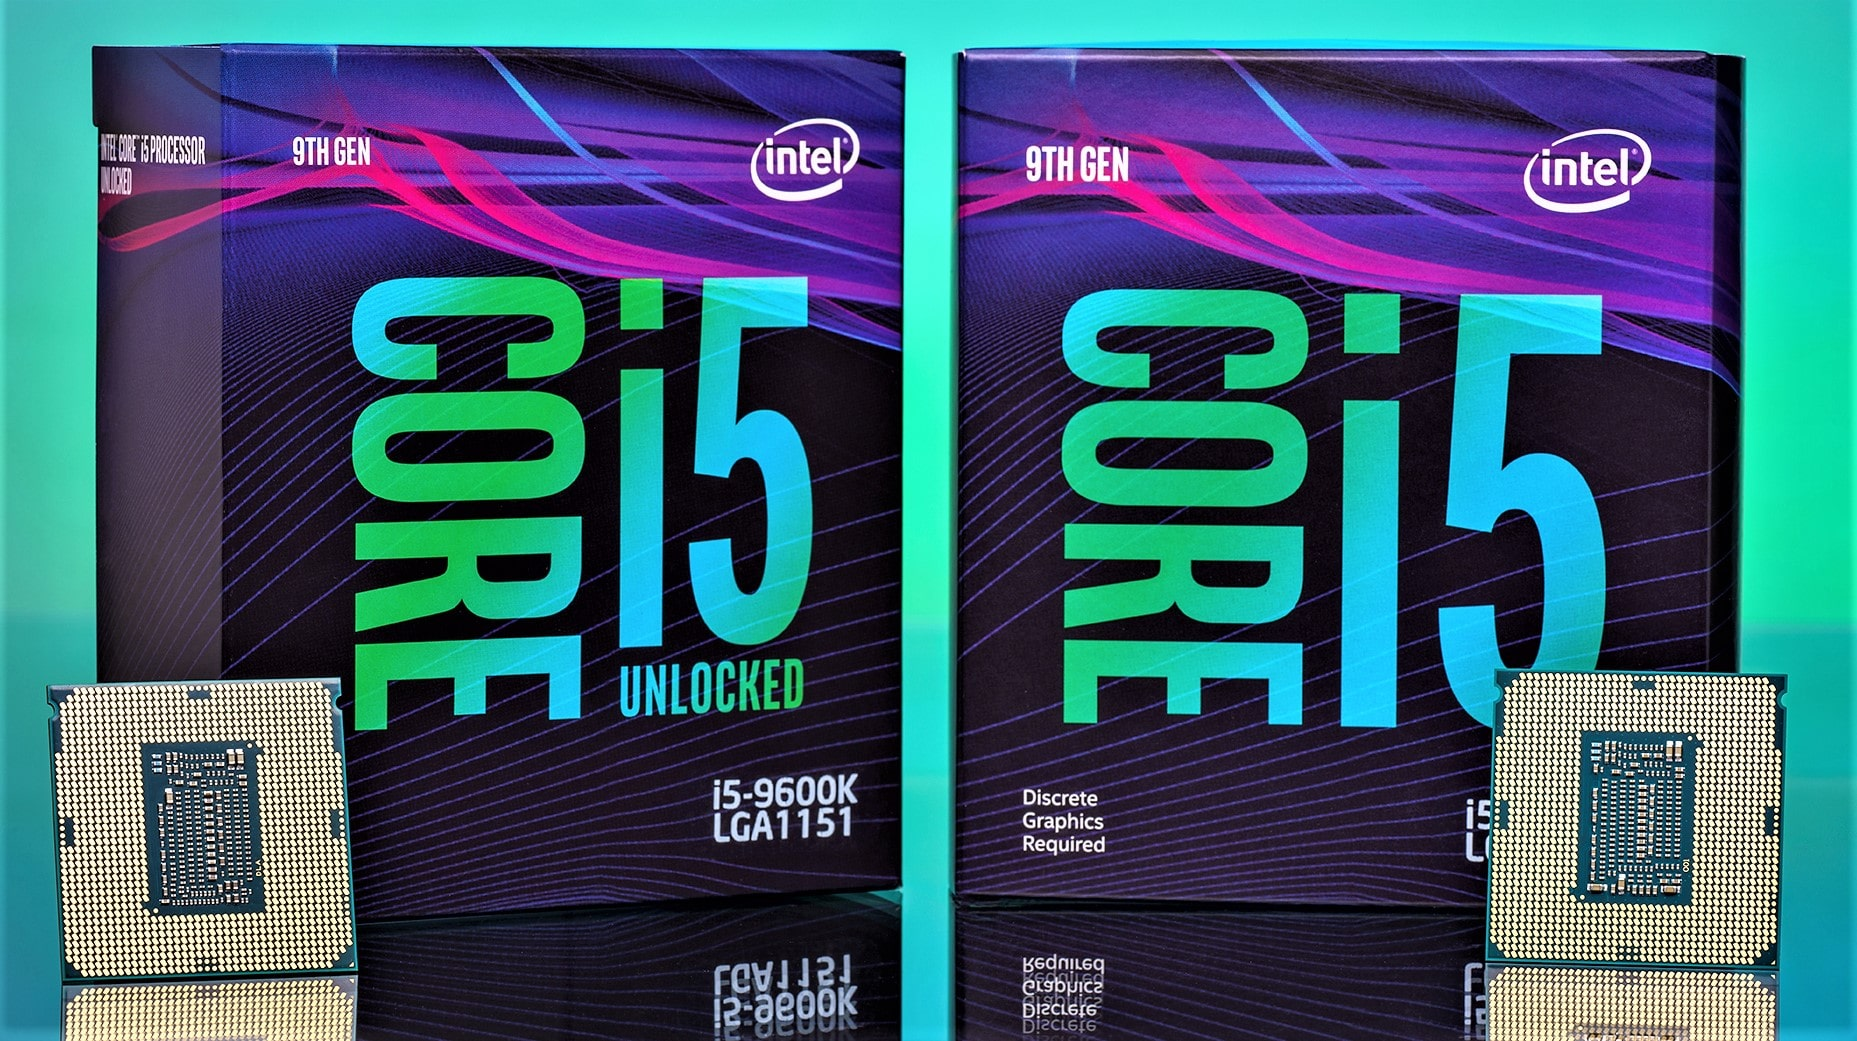 intel-i5-9400f-budget-gaming-processor.